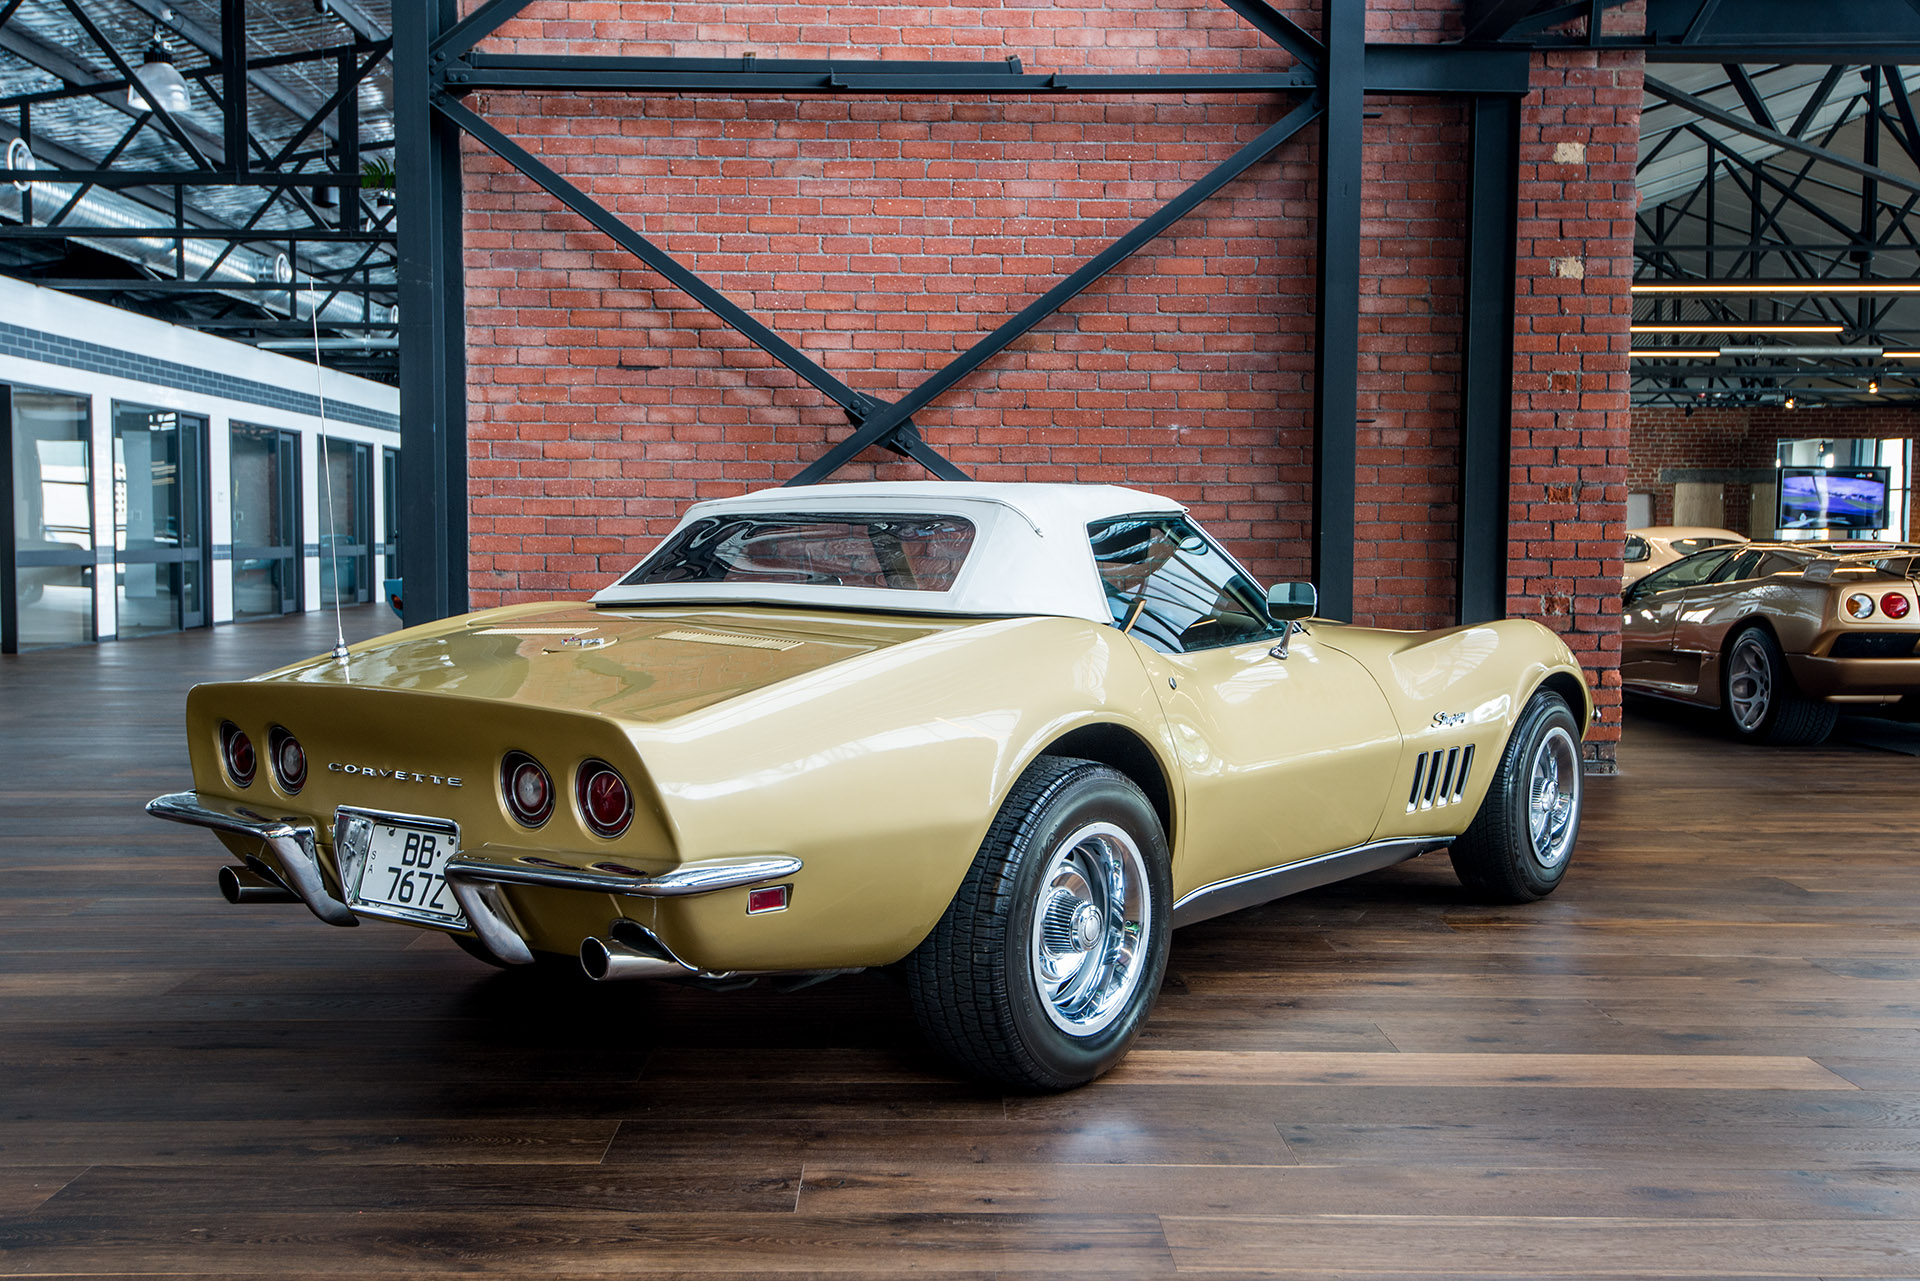 1969 Corvette Stingray >> 1969 Corvette Stingray - Richmonds - Classic and Prestige Cars - Storage and Sales - Adelaide ...